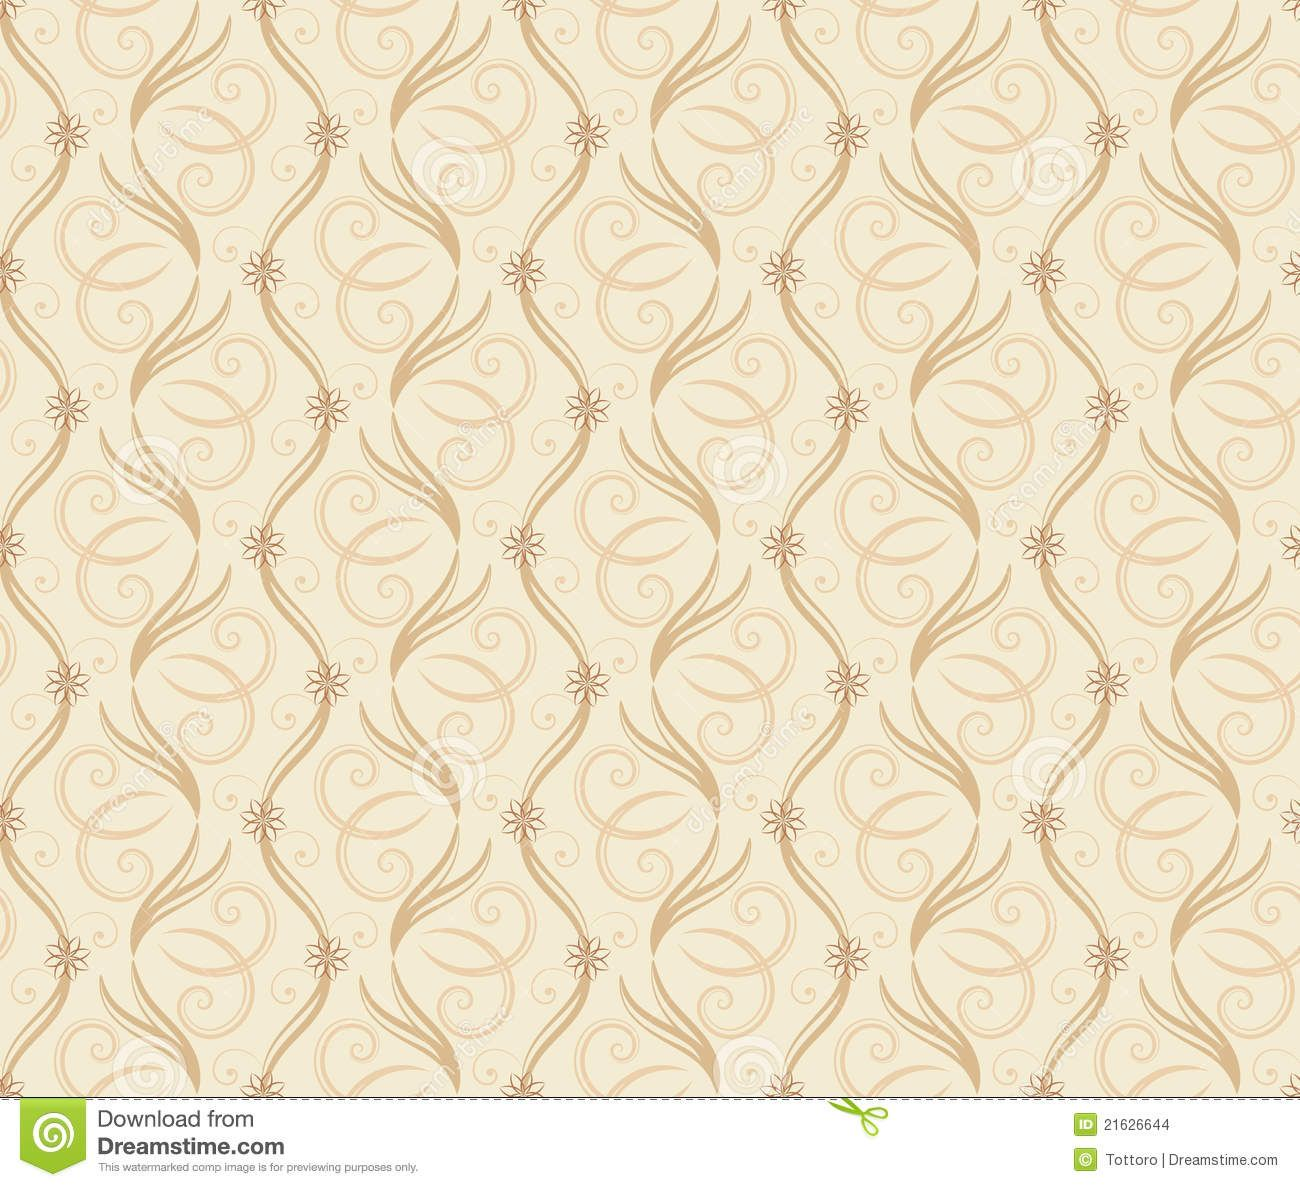 Modern wallpaper textures google search wallpaper for Modern textured wallpaper